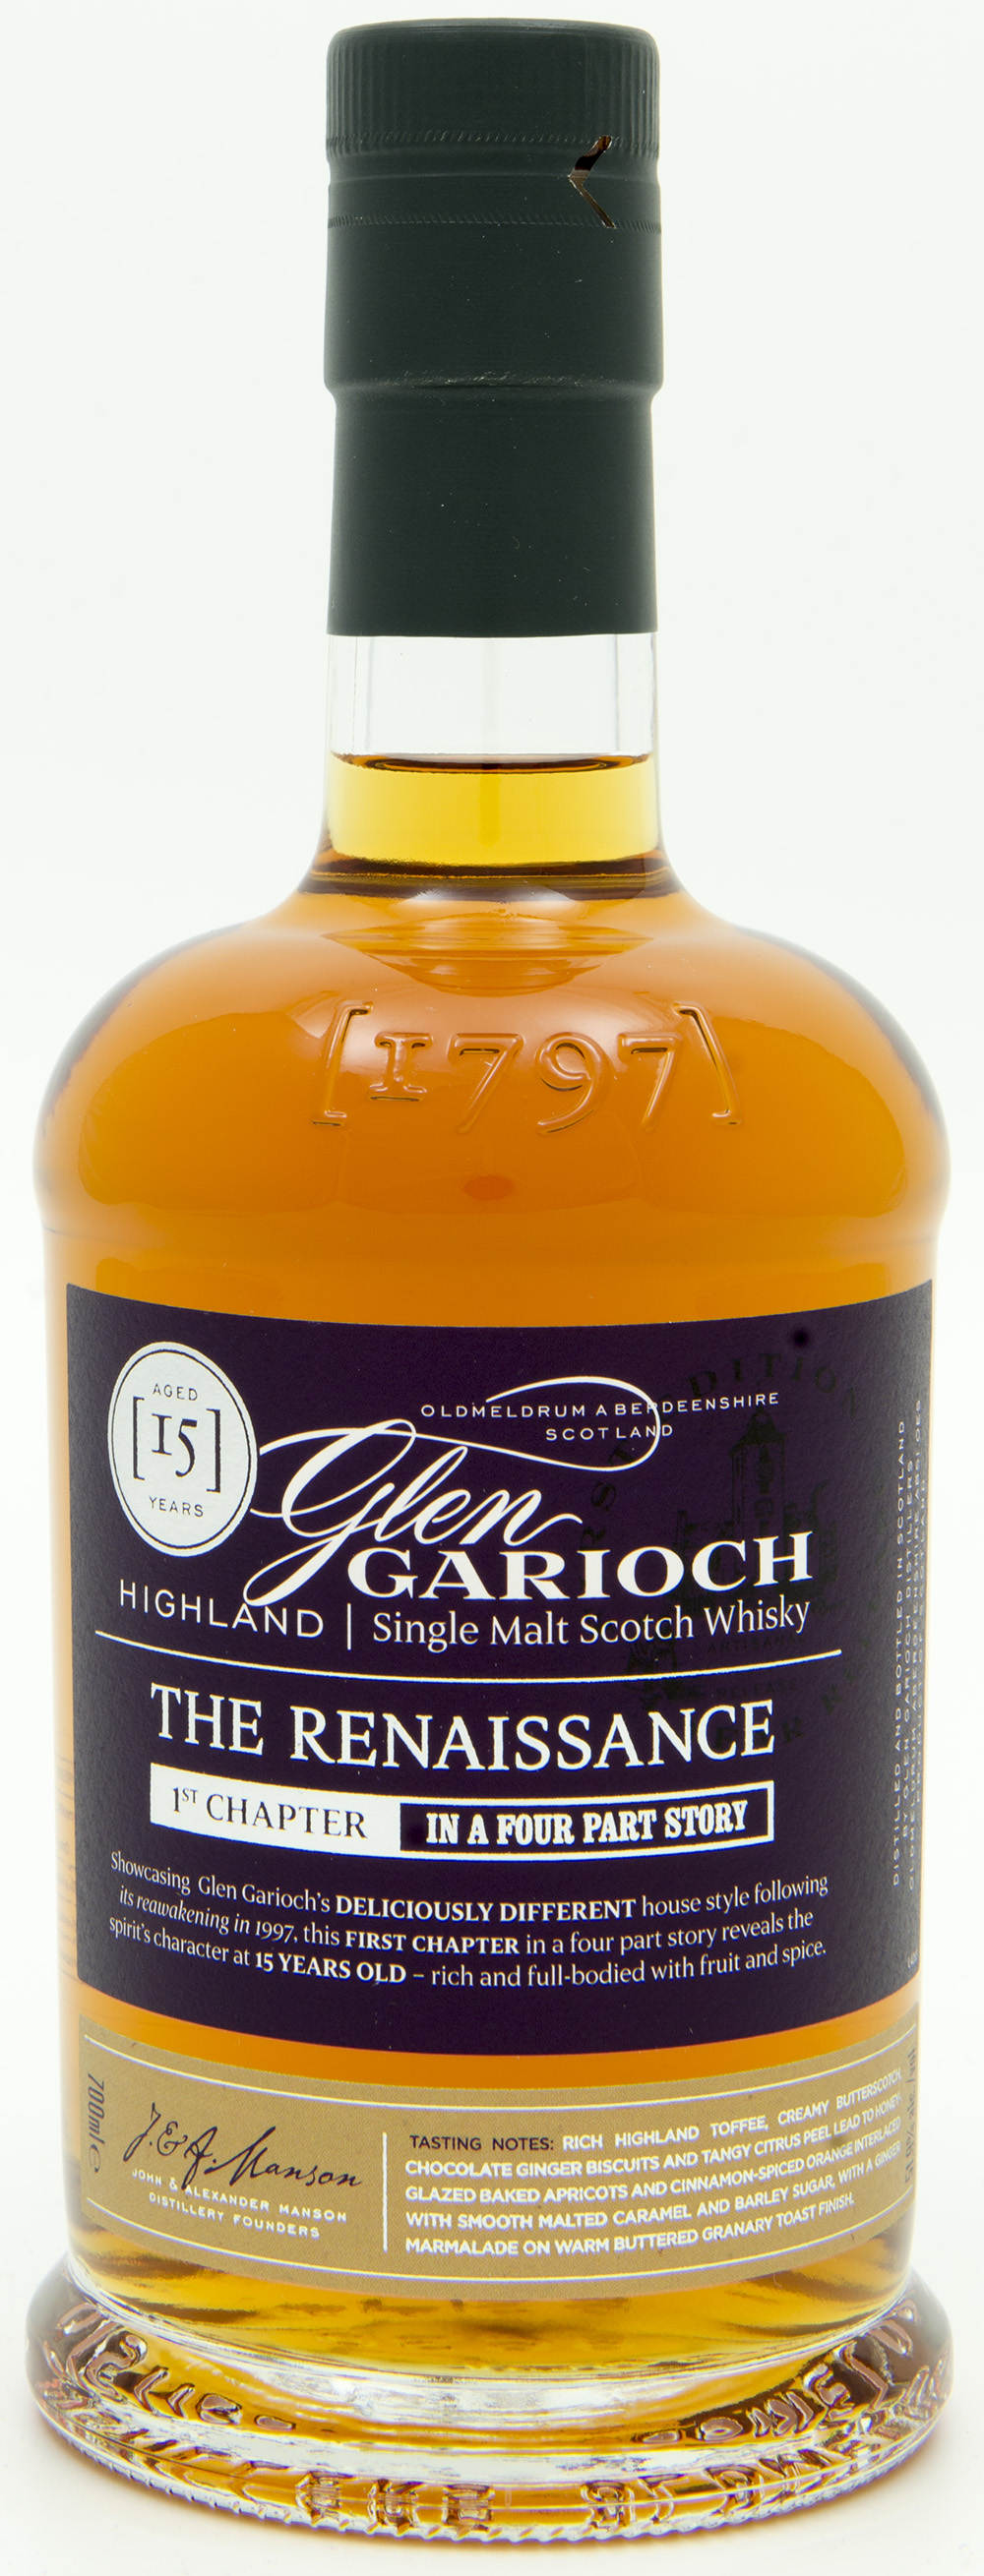 Billede: DSC_6552 Glen Garioch 15 - The Renaissance 1st chapter.jpg